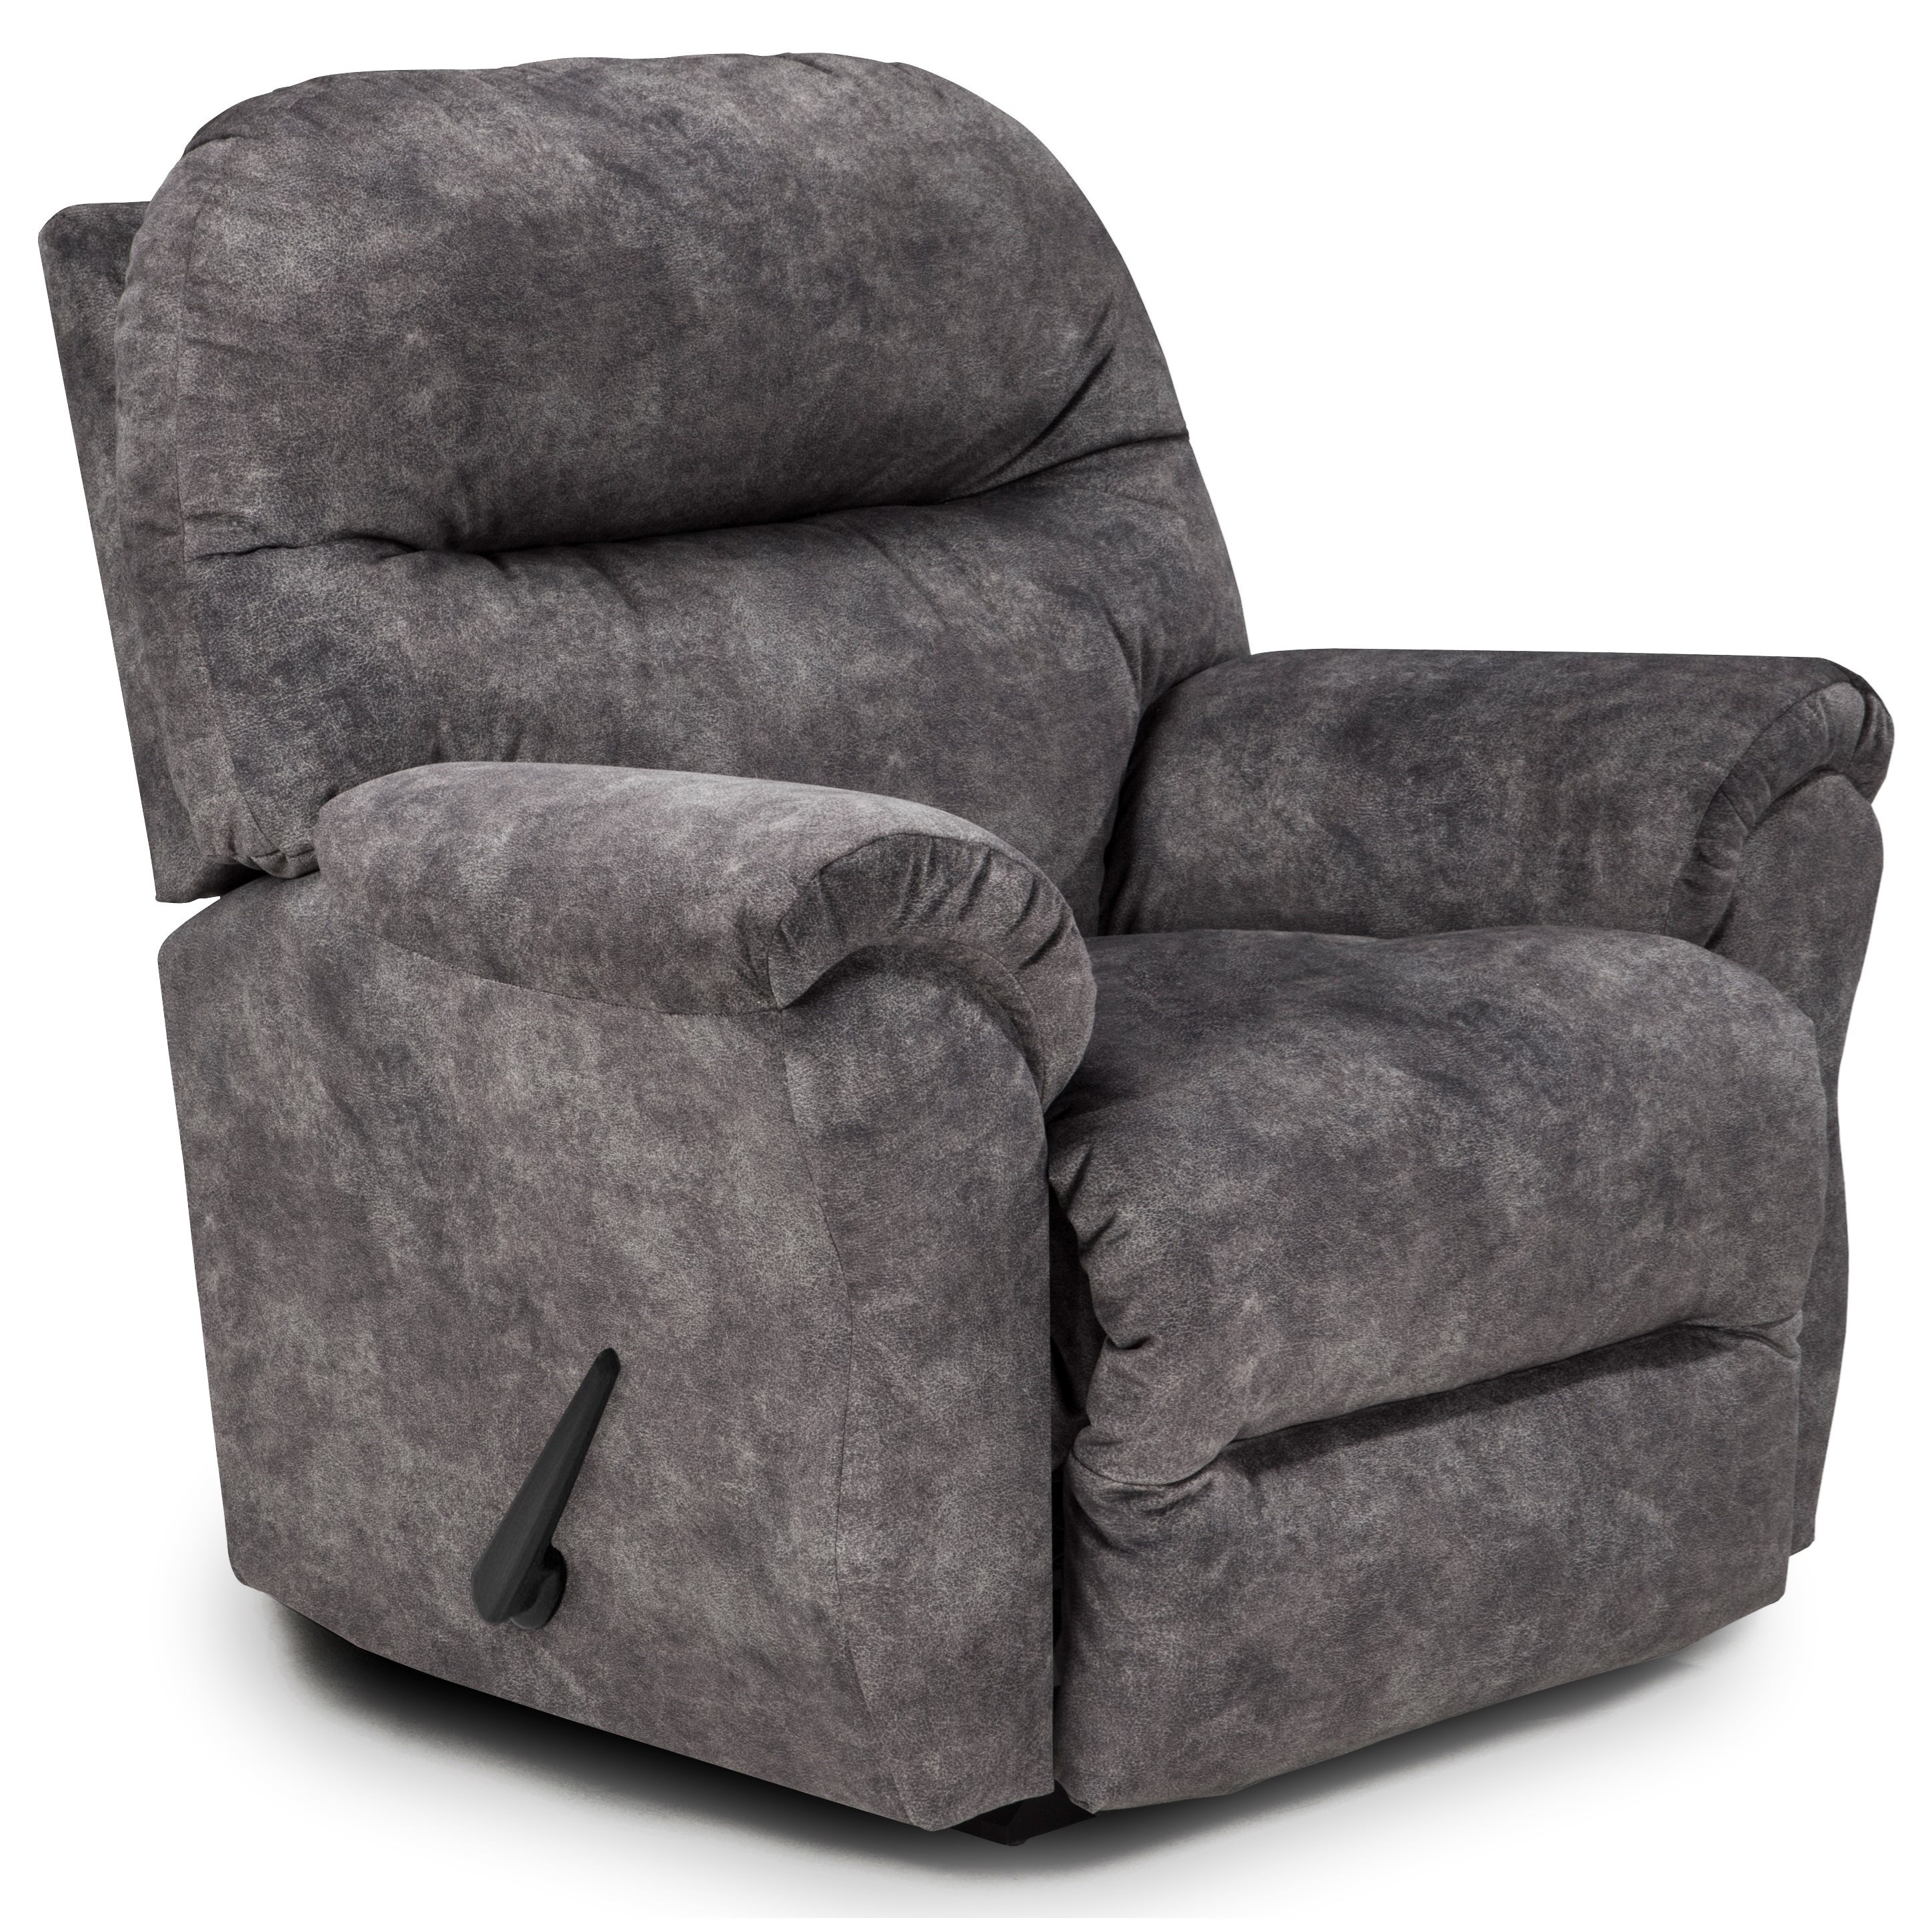 Medium Recliners Bodie Swivel Glider Recliner by Best Home Furnishings at Baer's Furniture